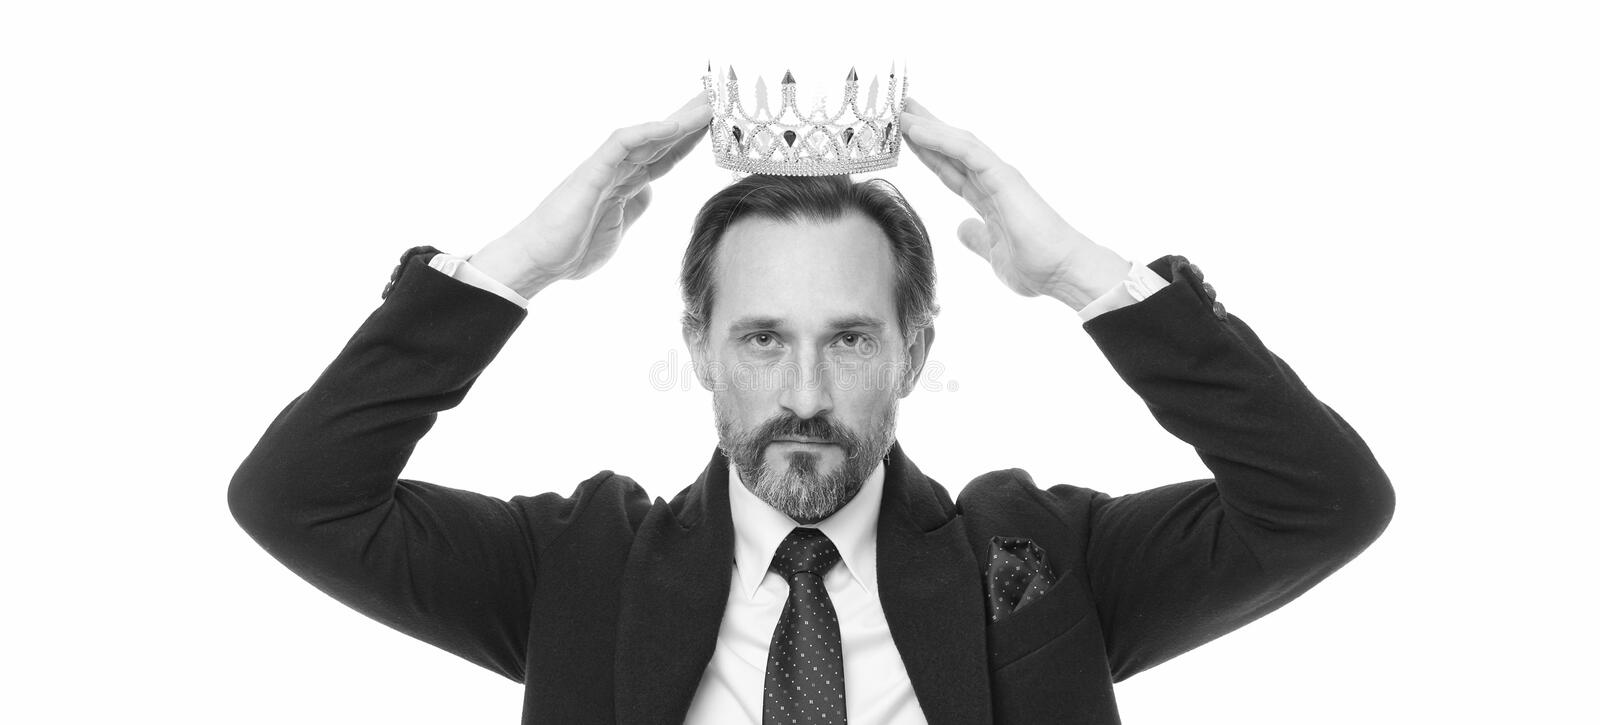 Monarchy family traditions. Man nature bearded guy in suit hold golden crown symbol of monarchy. Direct line to throne stock photography